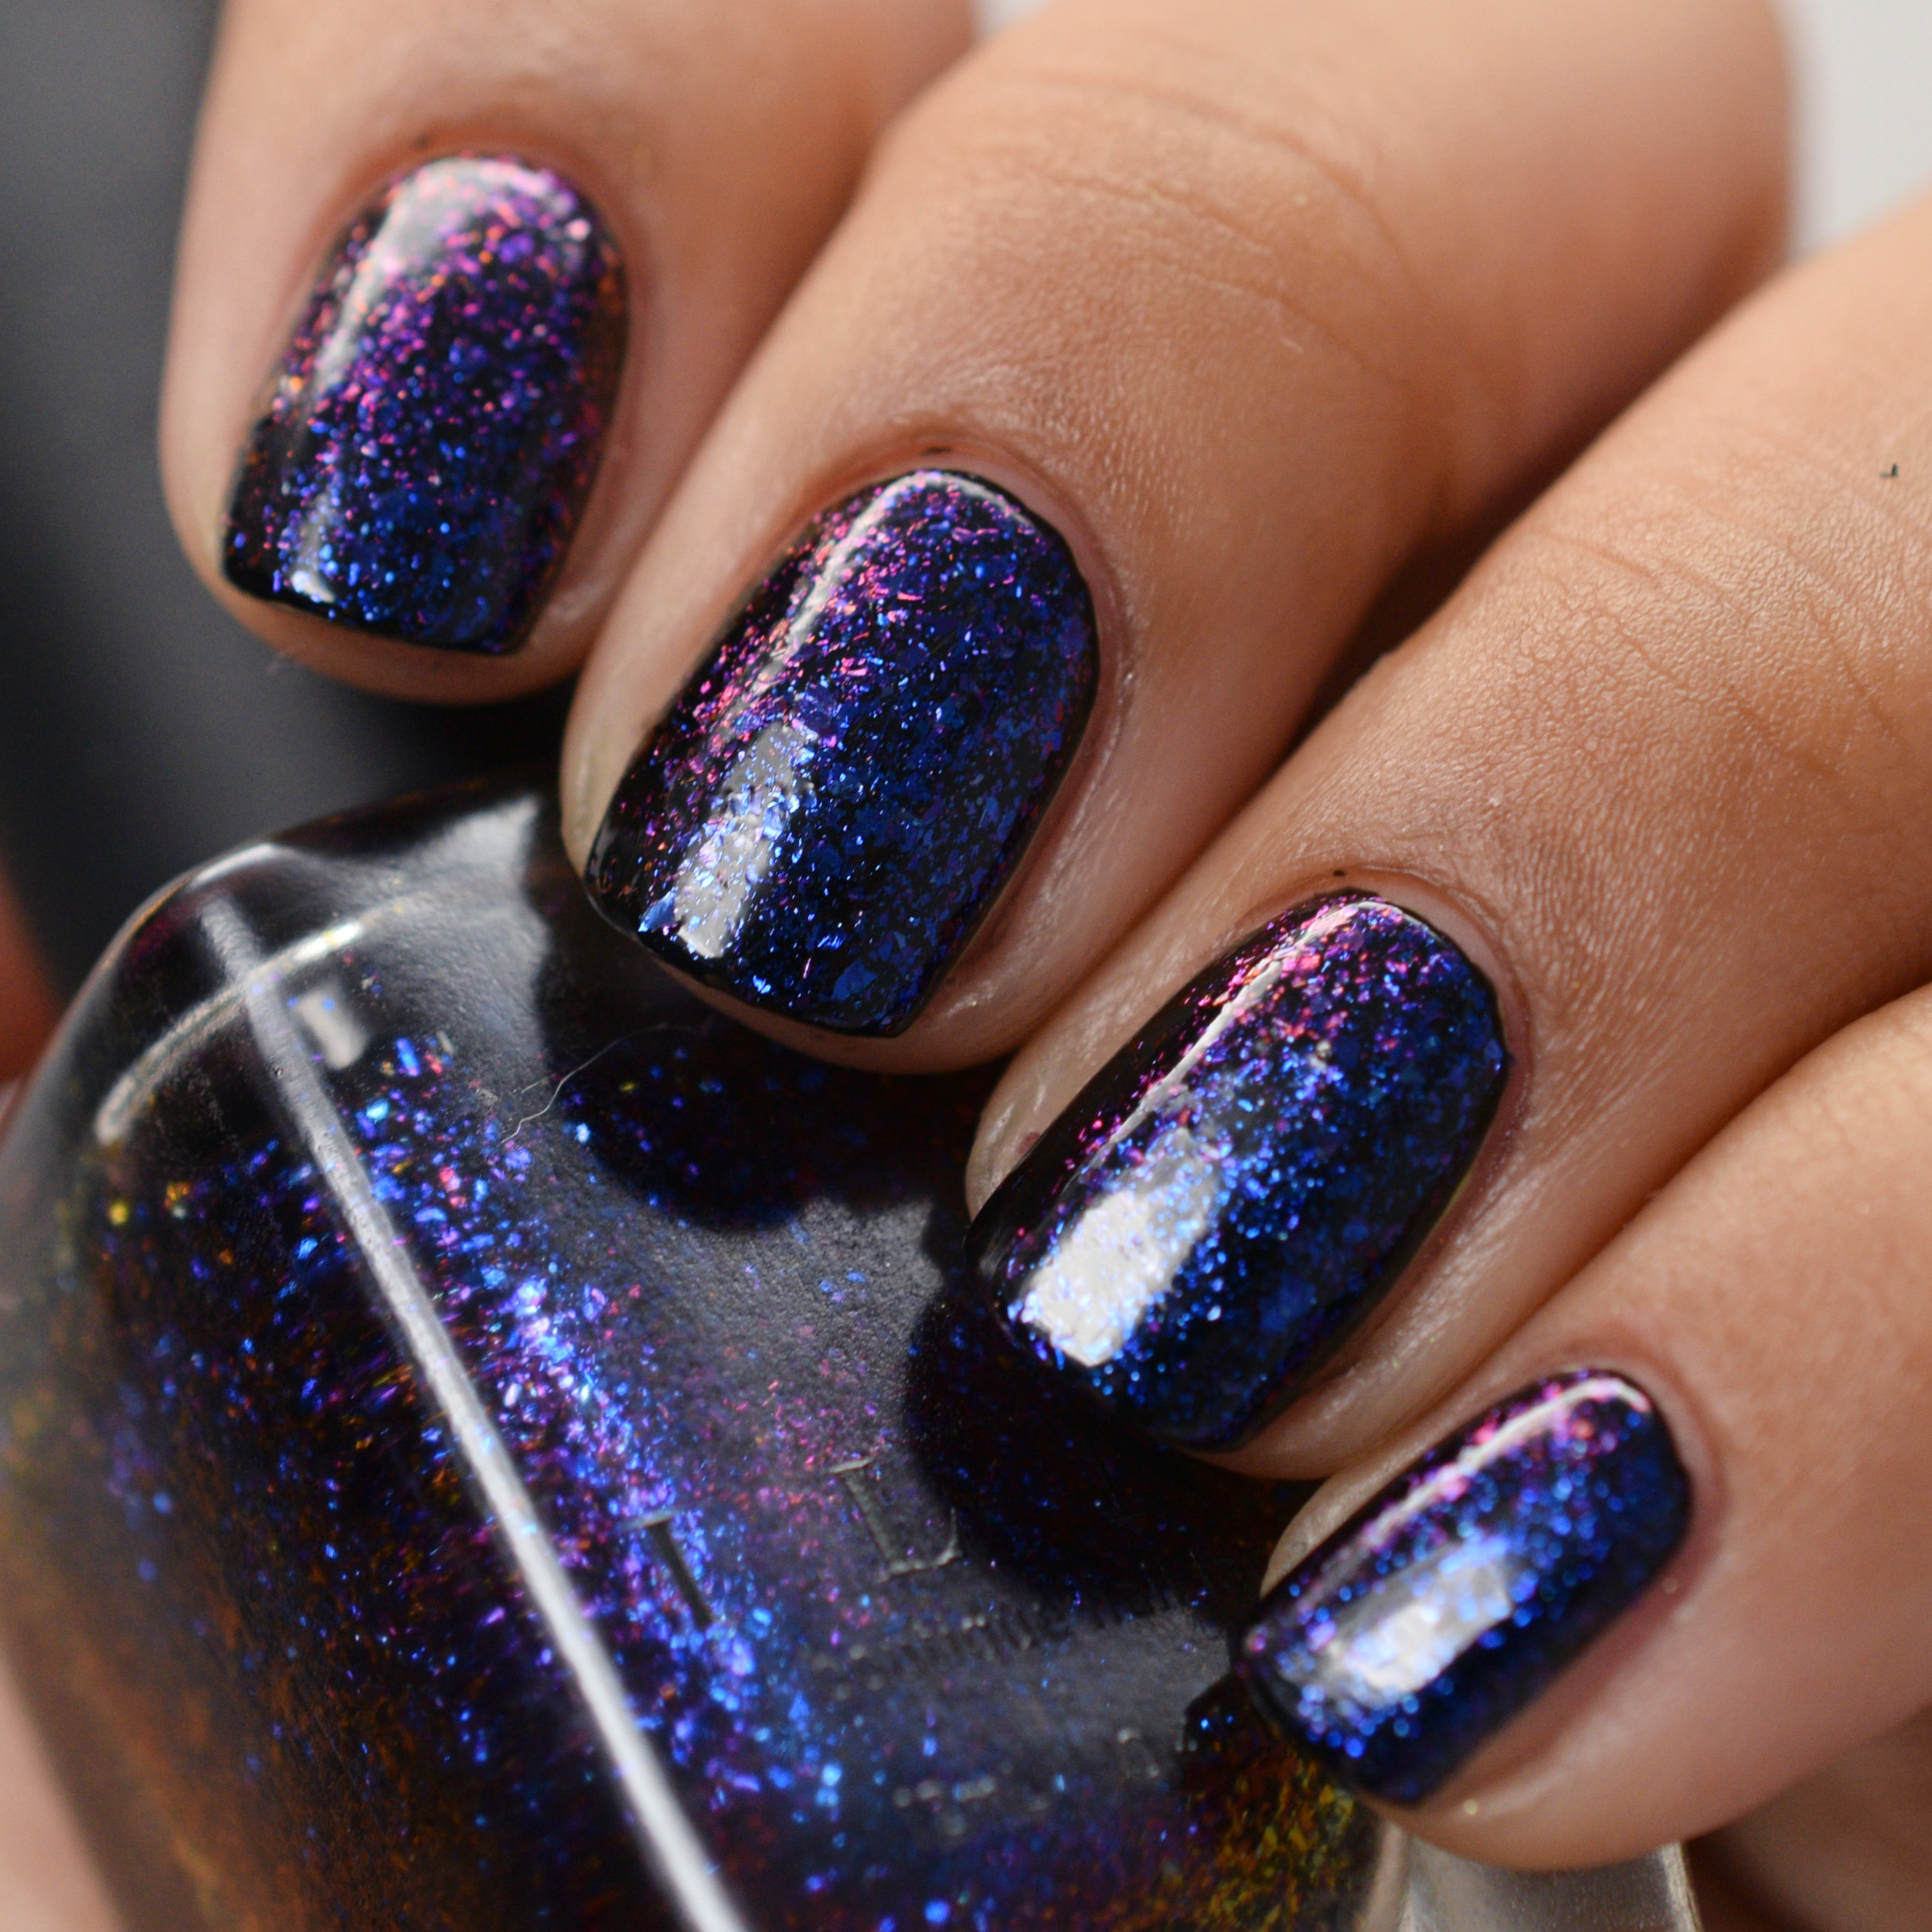 ILNP Ultra Chrome Flakies 2014 - Atlantis 2.jpg